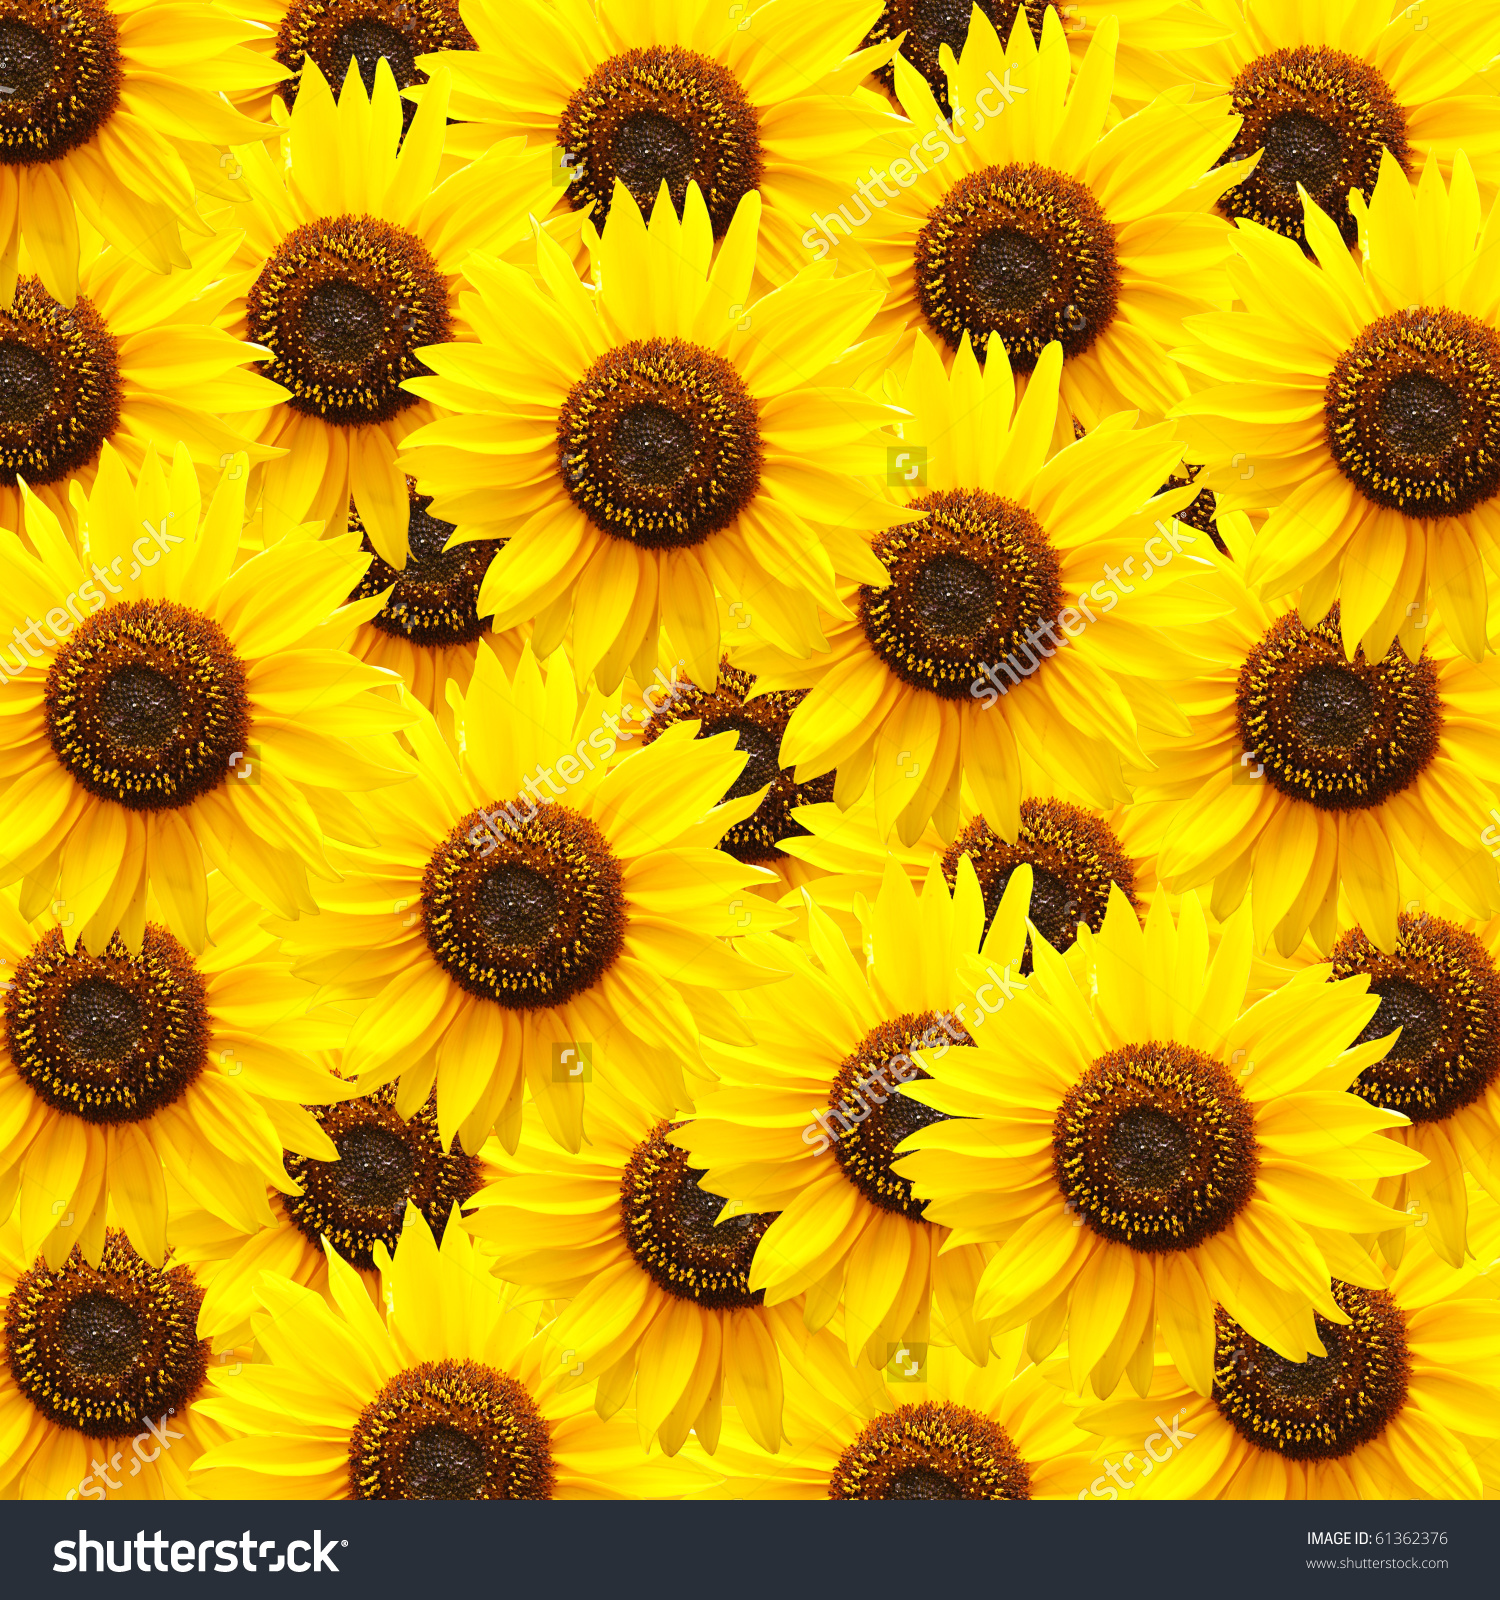 Sunflower Background Stock Photo 61362376 - Shutterstock